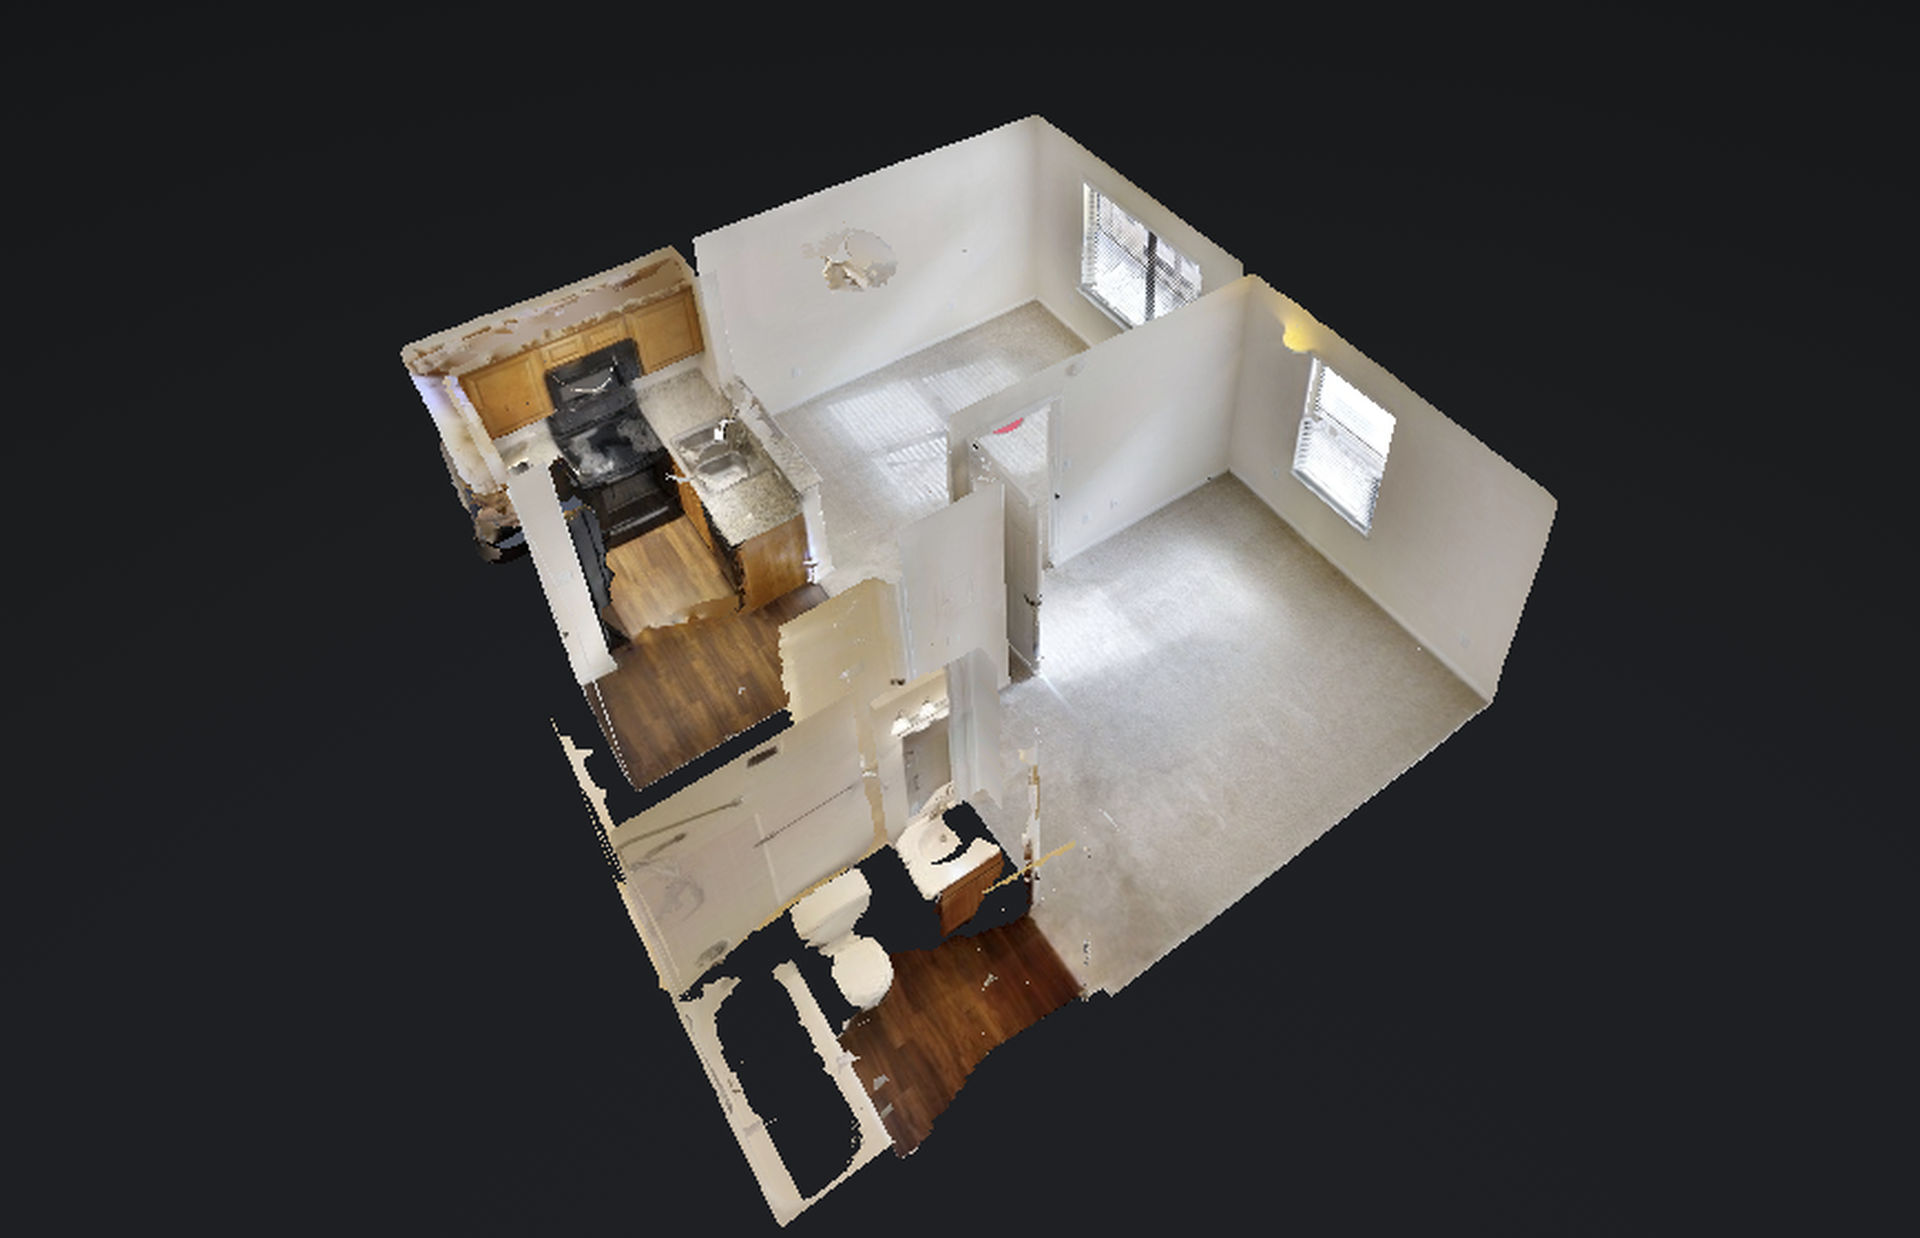 Dollhouse View of Floor Plan